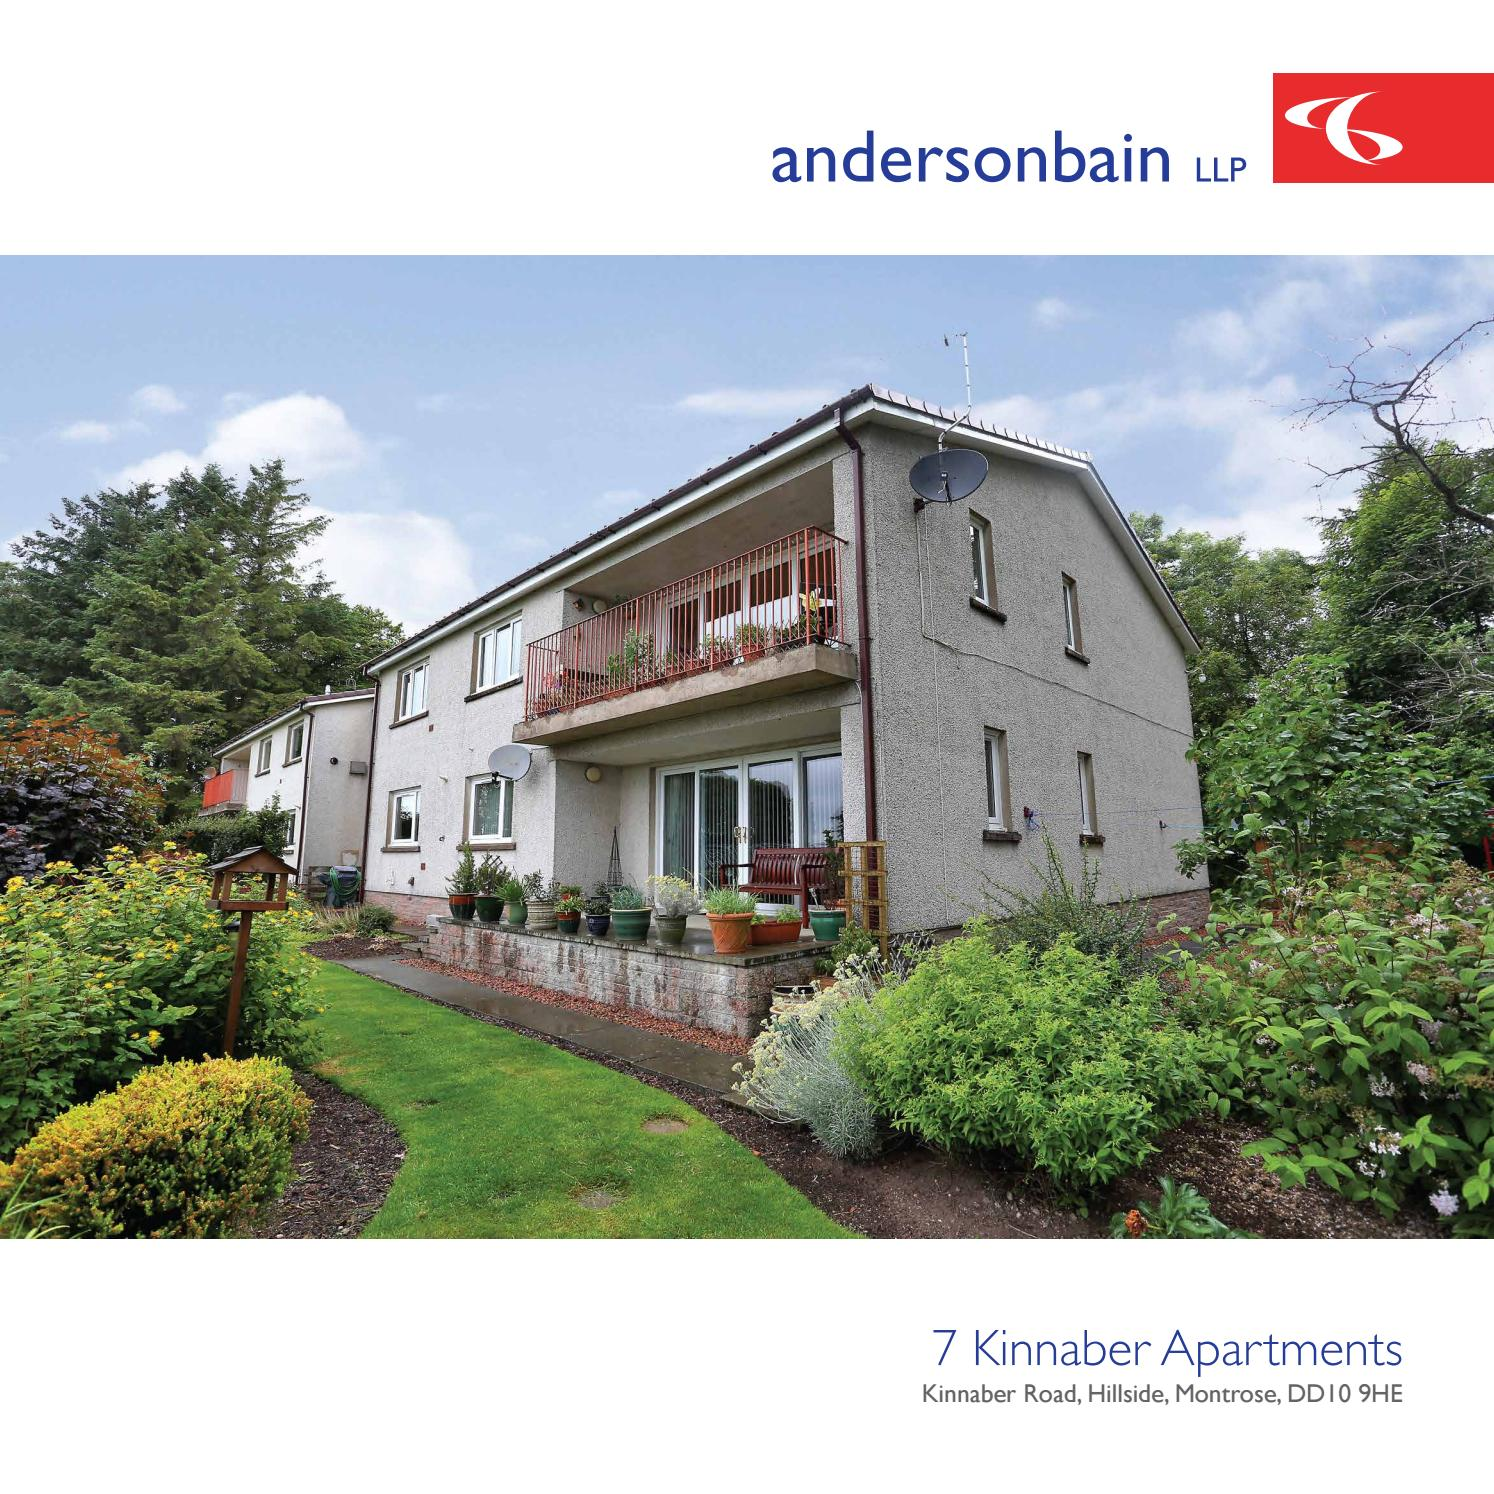 Separate Garage Block Possibly With Studio Accommodation: Andersonbain • 7 Kinnaber Apartments By Kovek